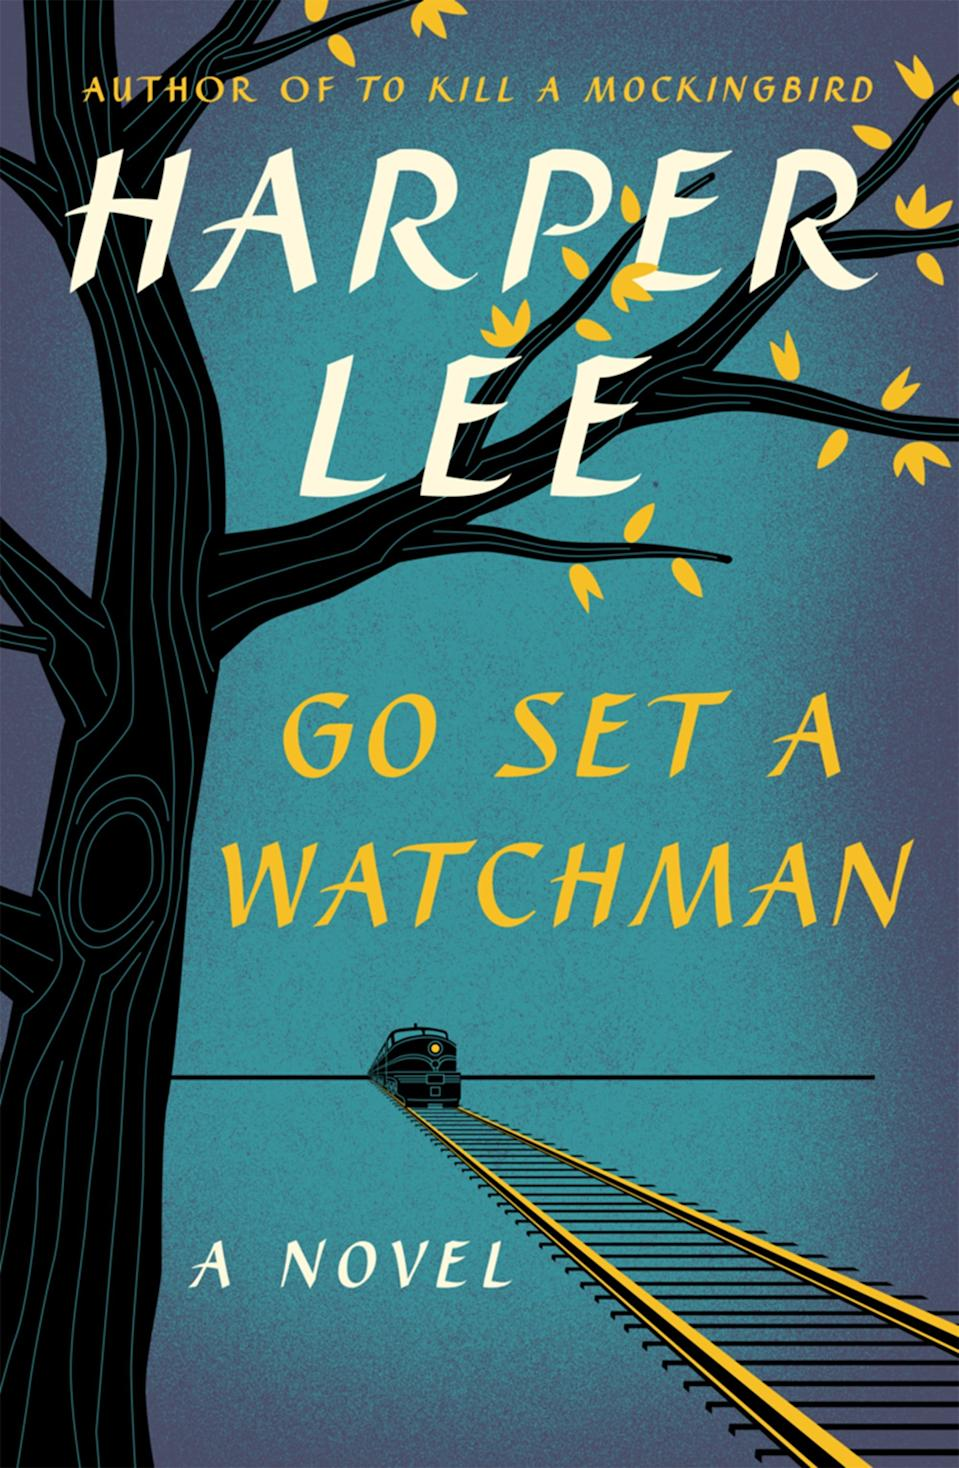 """It's still not clear if """"Go Set a Watchman"""" was published with Harper Lee's full permission."""